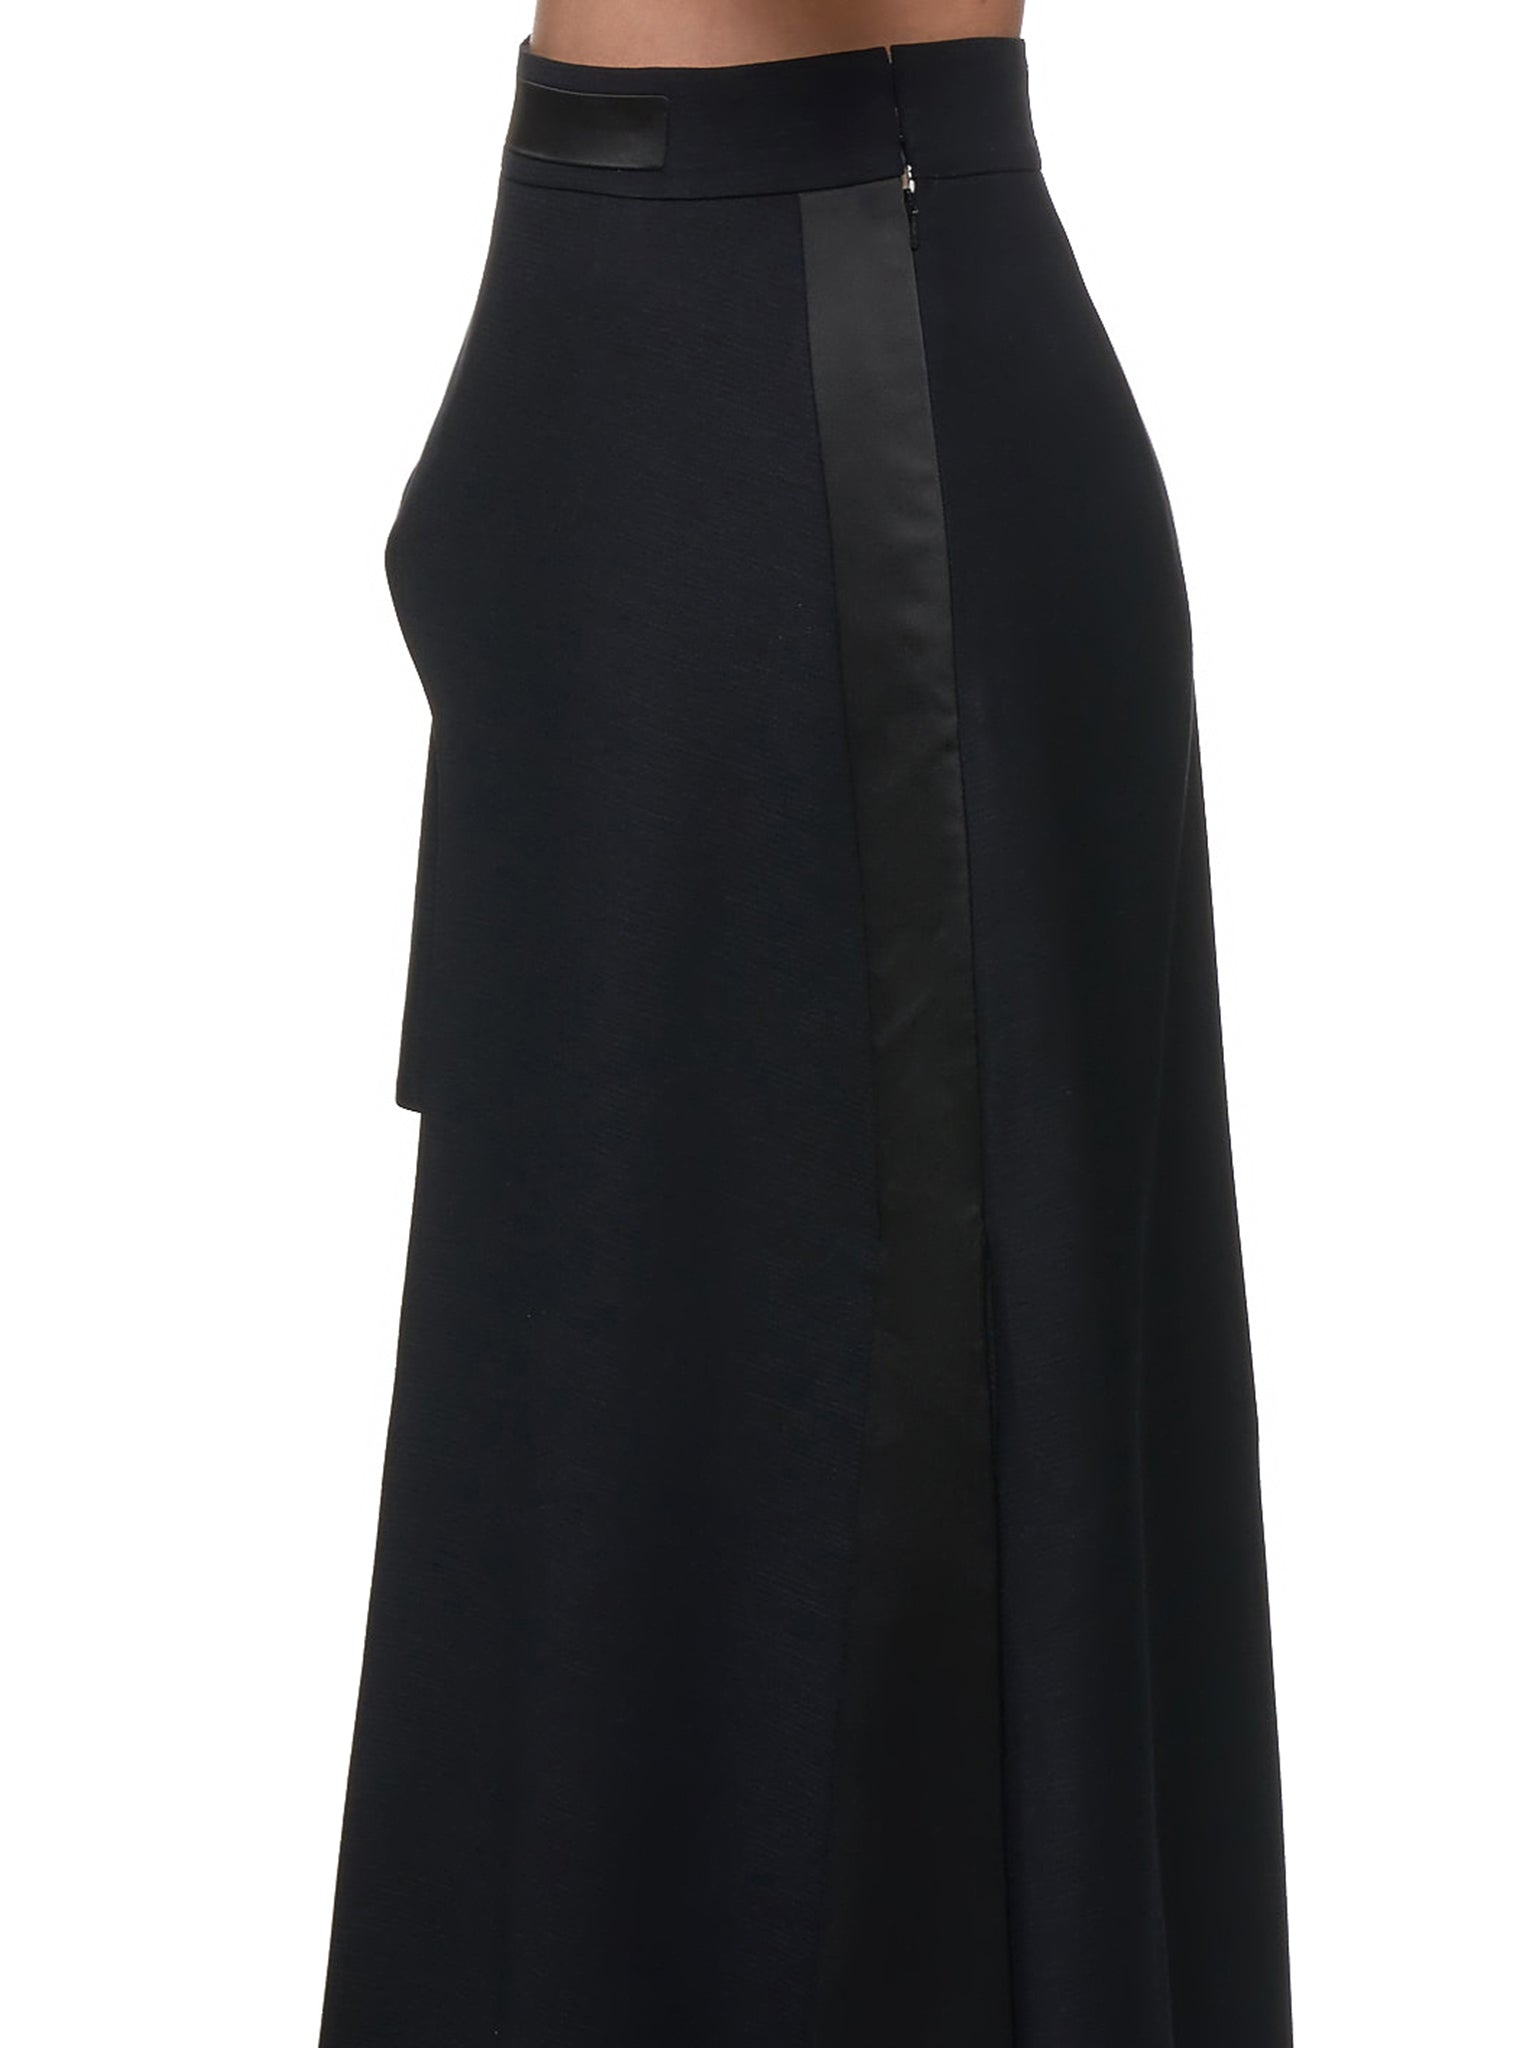 Caped Skirt (B4-BLACK)